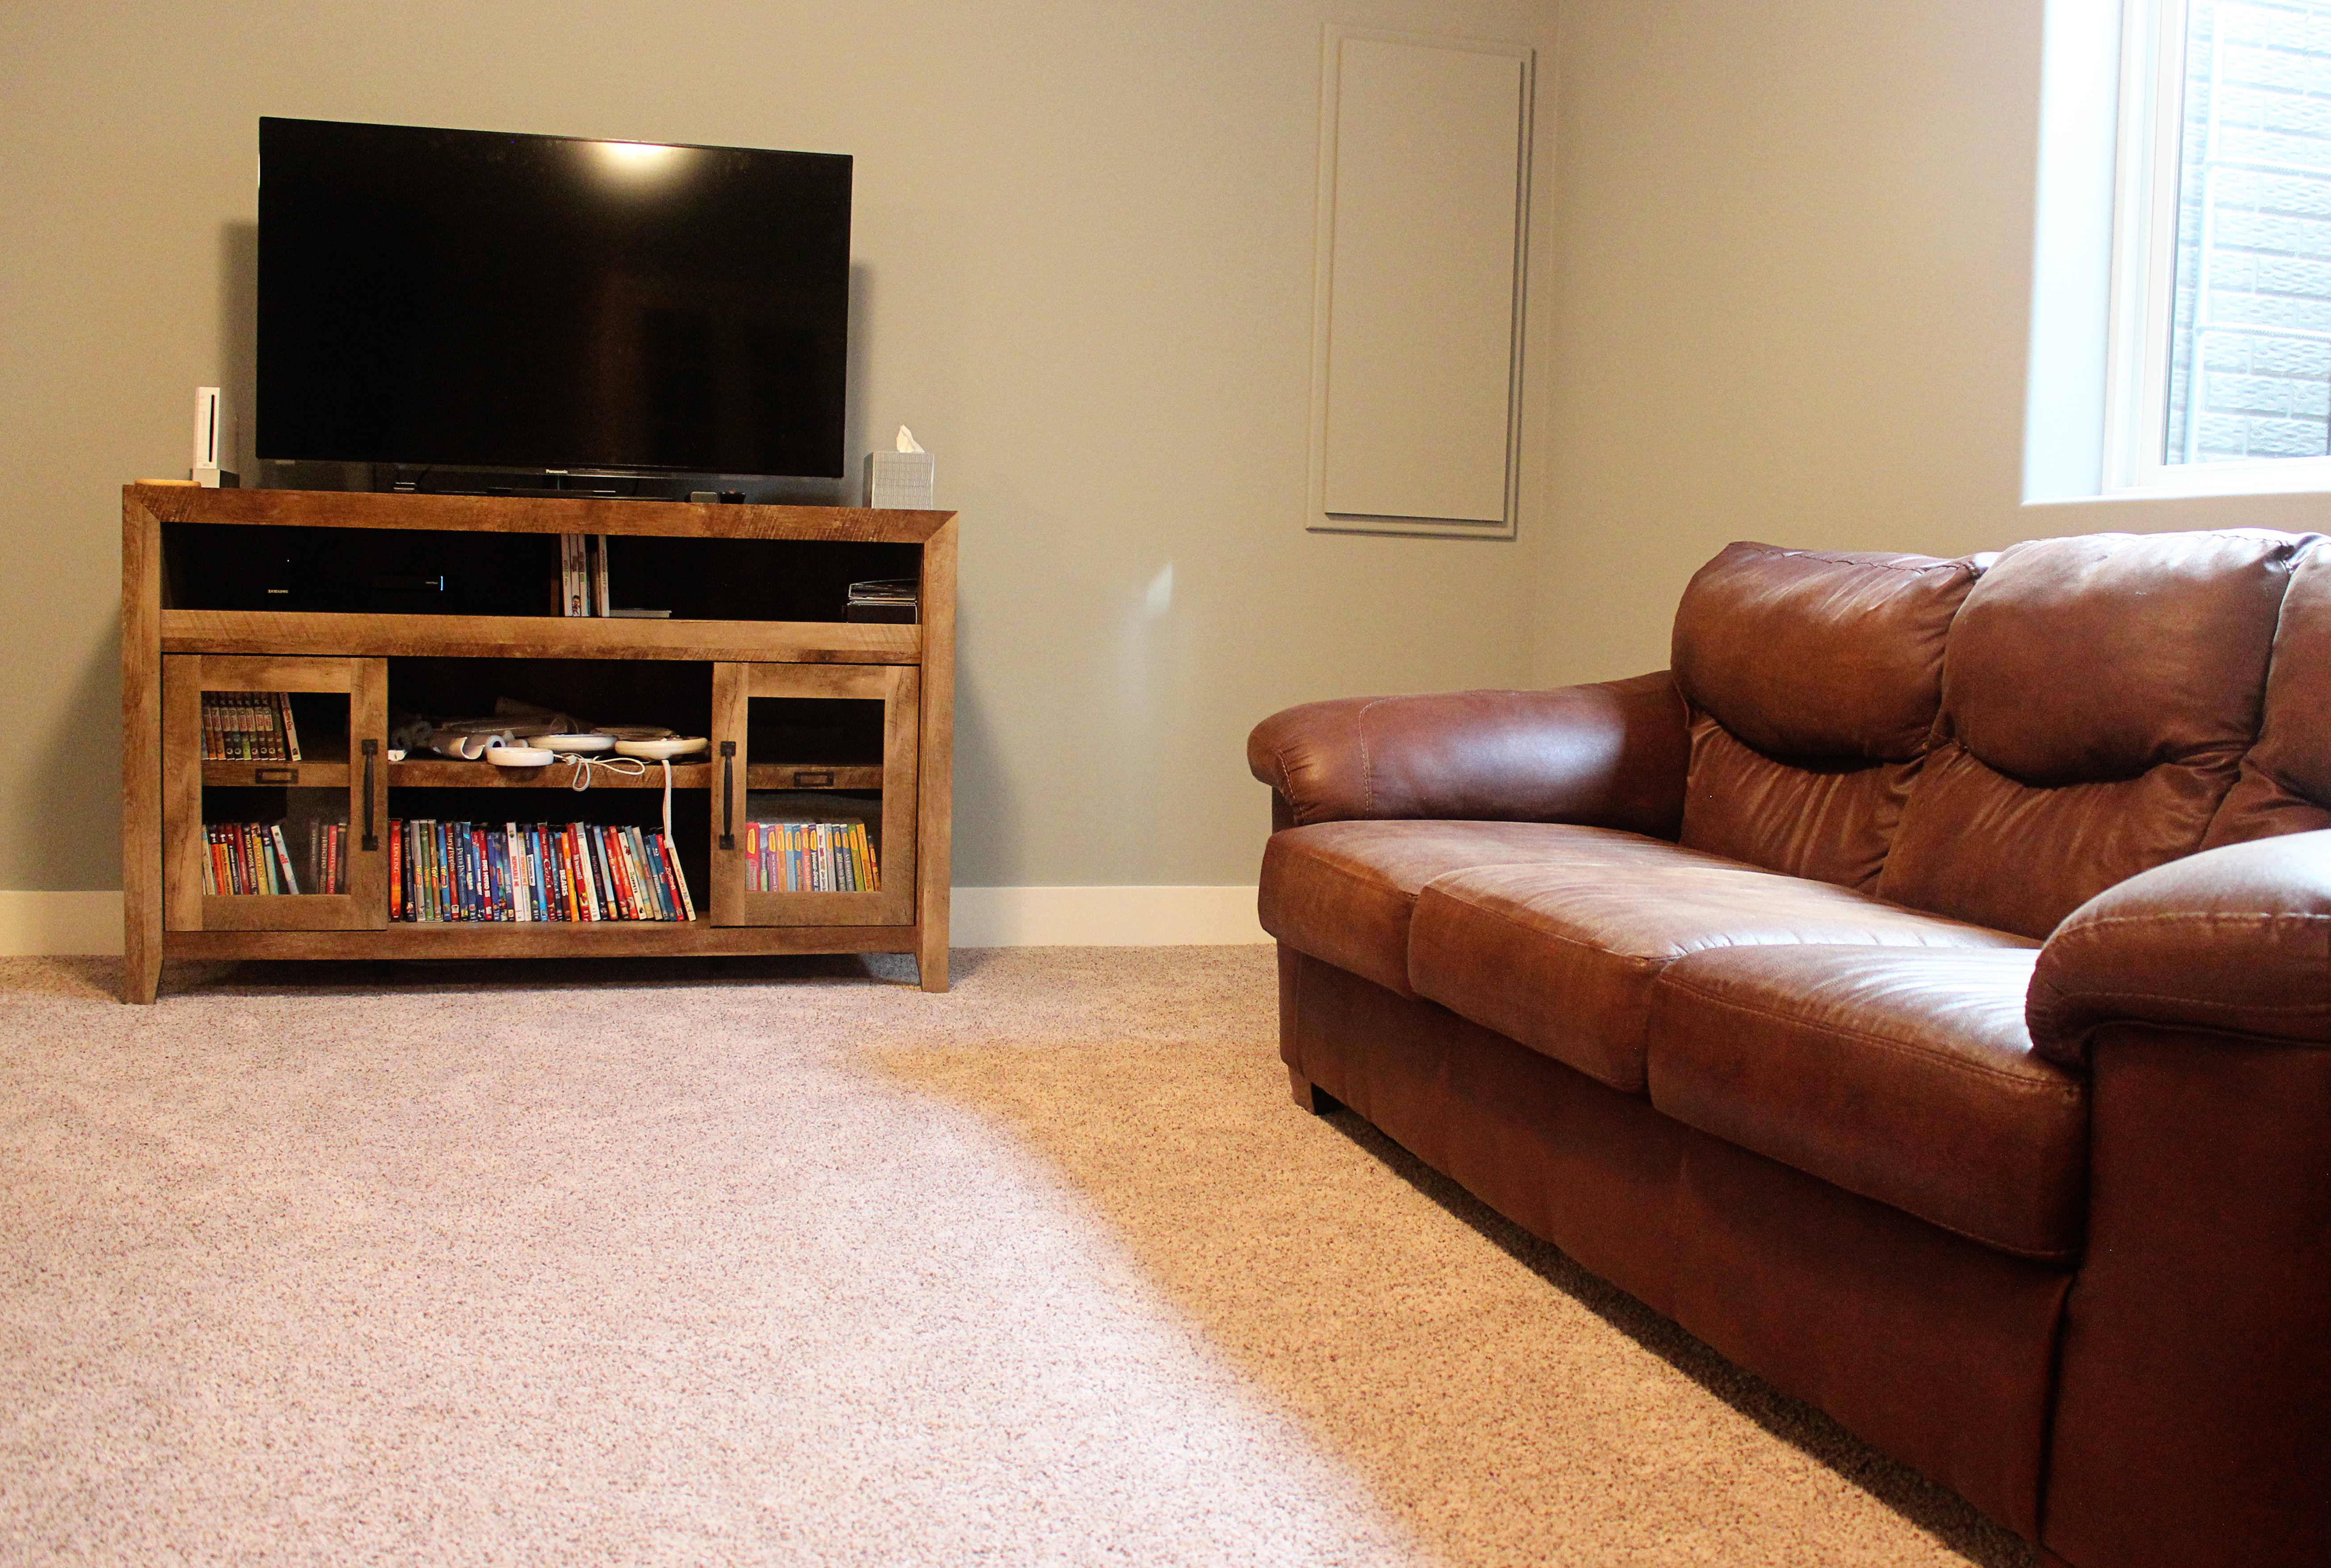 High Quality The Furniture From Our Living Room In The Old House Was Just Right For This  Basement Family Room Space. Even With The Coach, Loveseat, Chair, And  Ottoman, ...